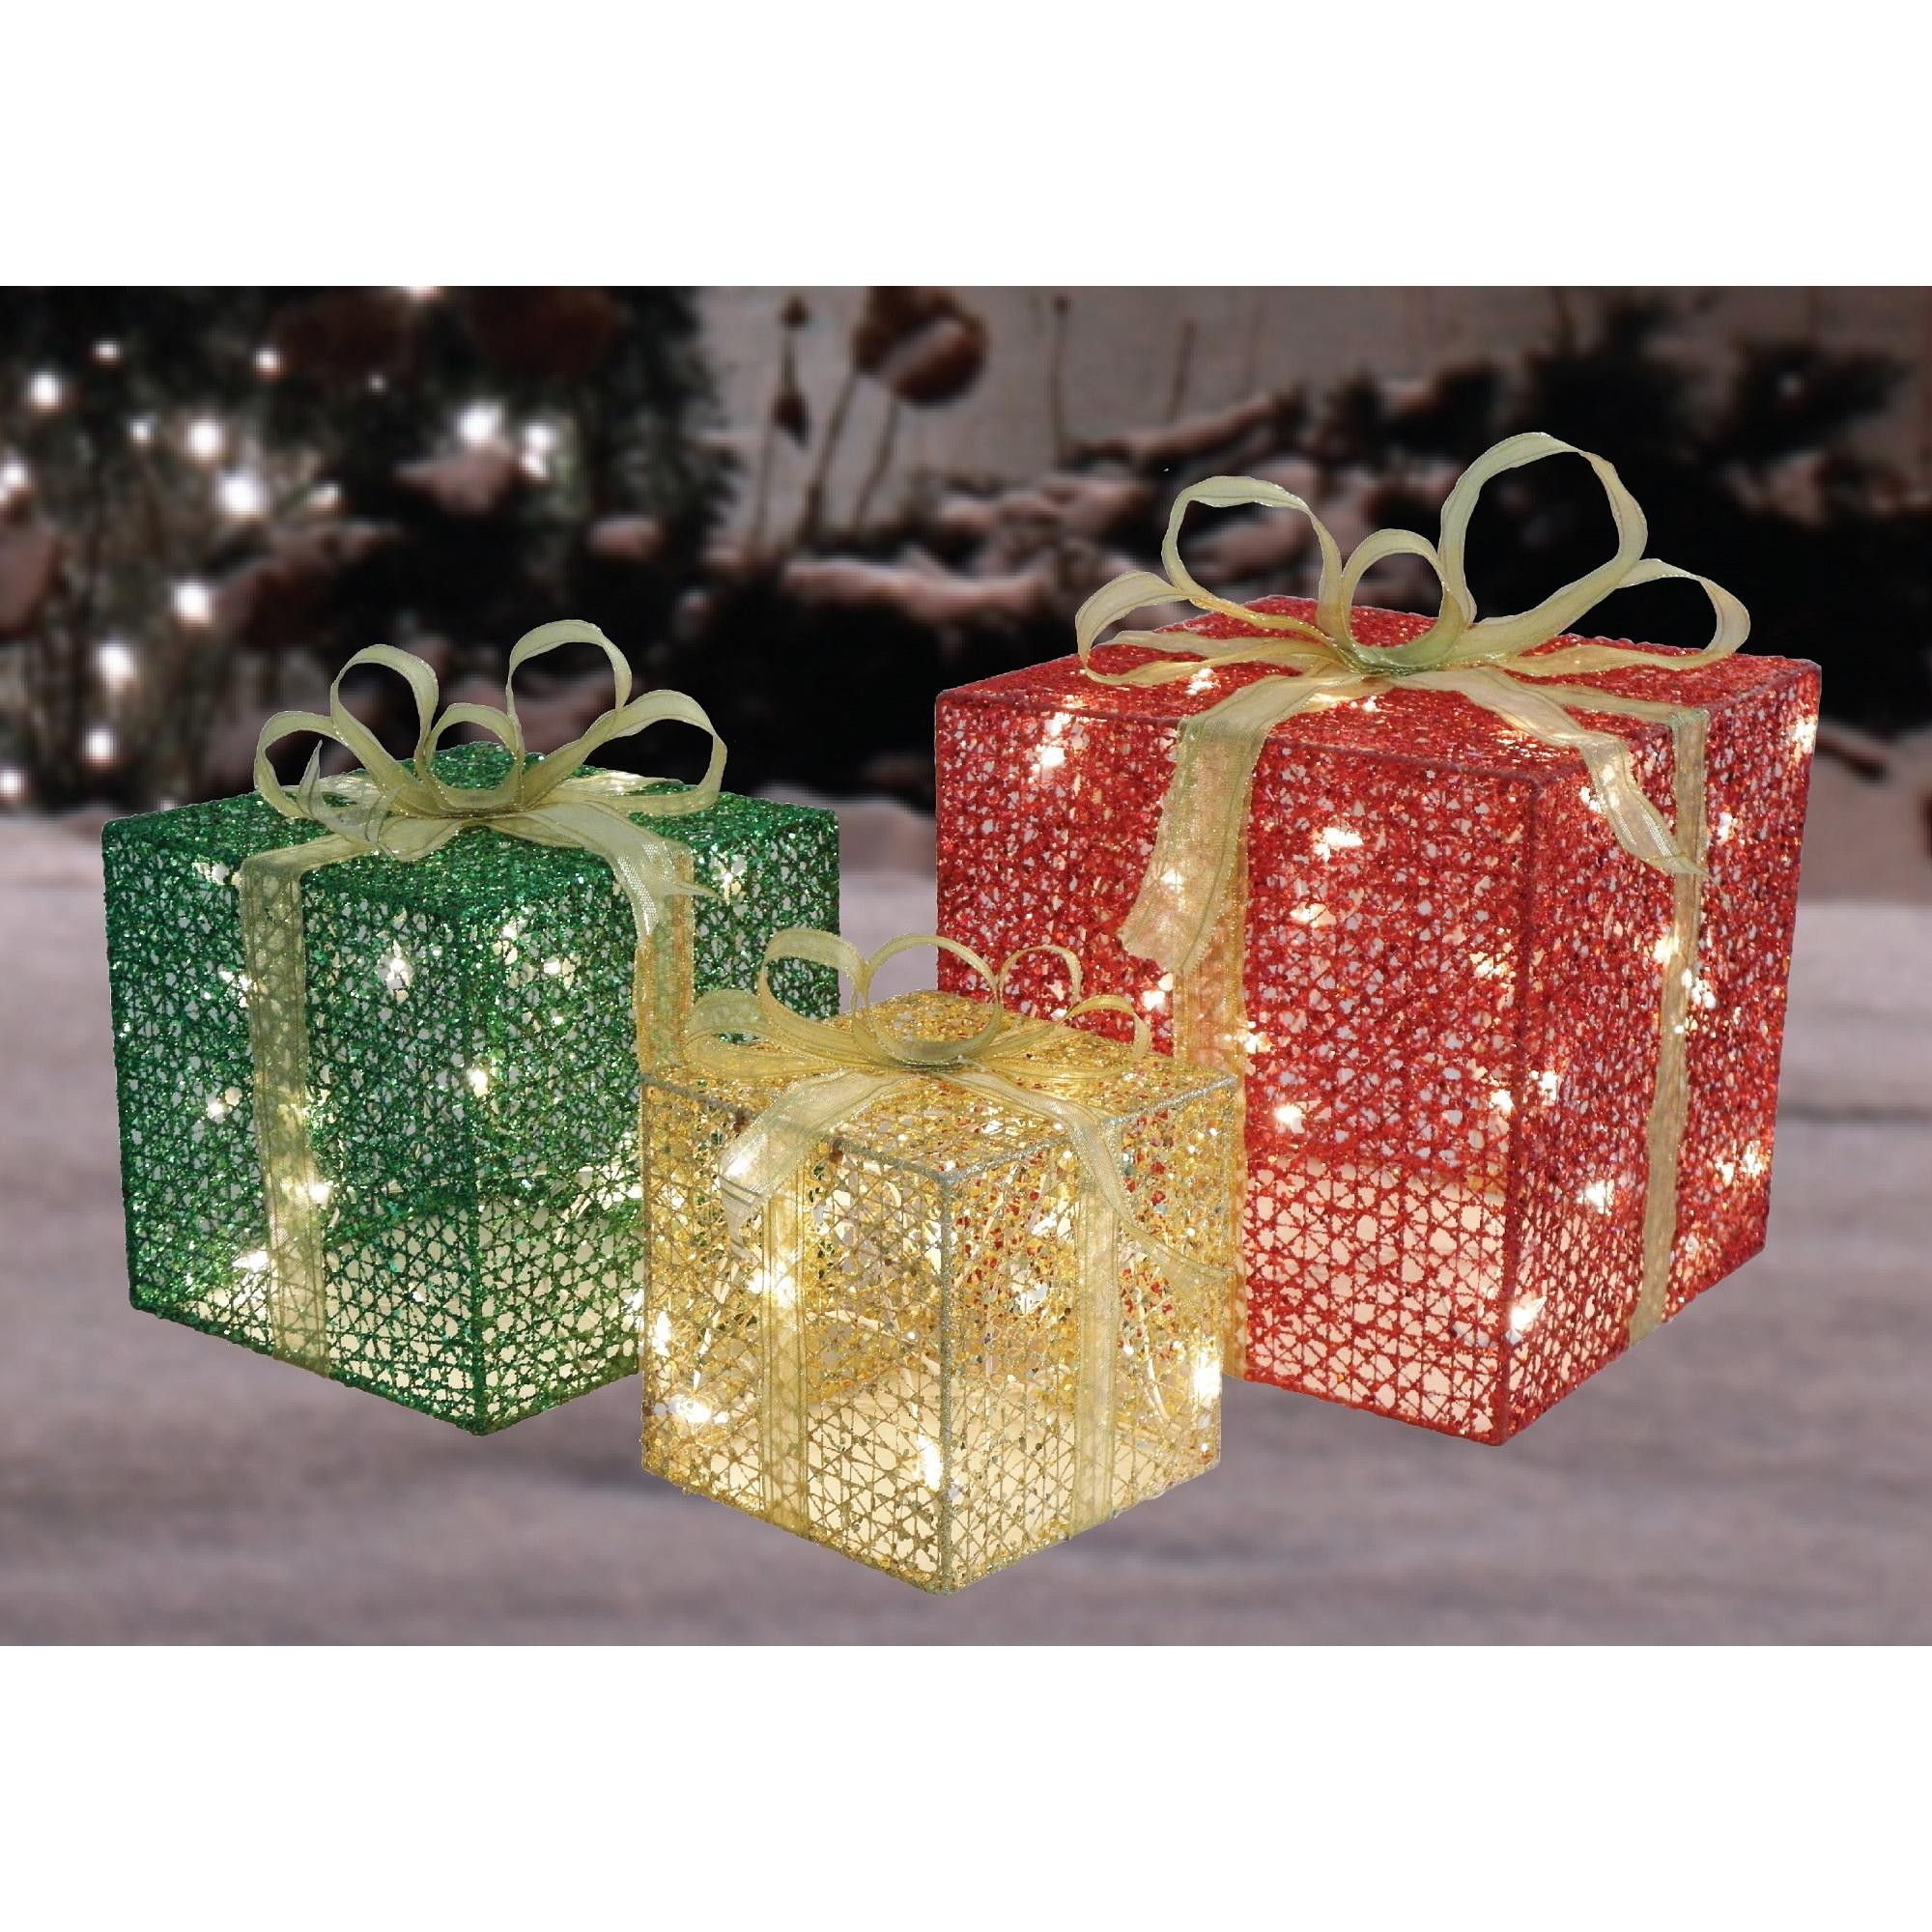 Northlight Set of 3 Red and Green Gift Box Lighted Christmas